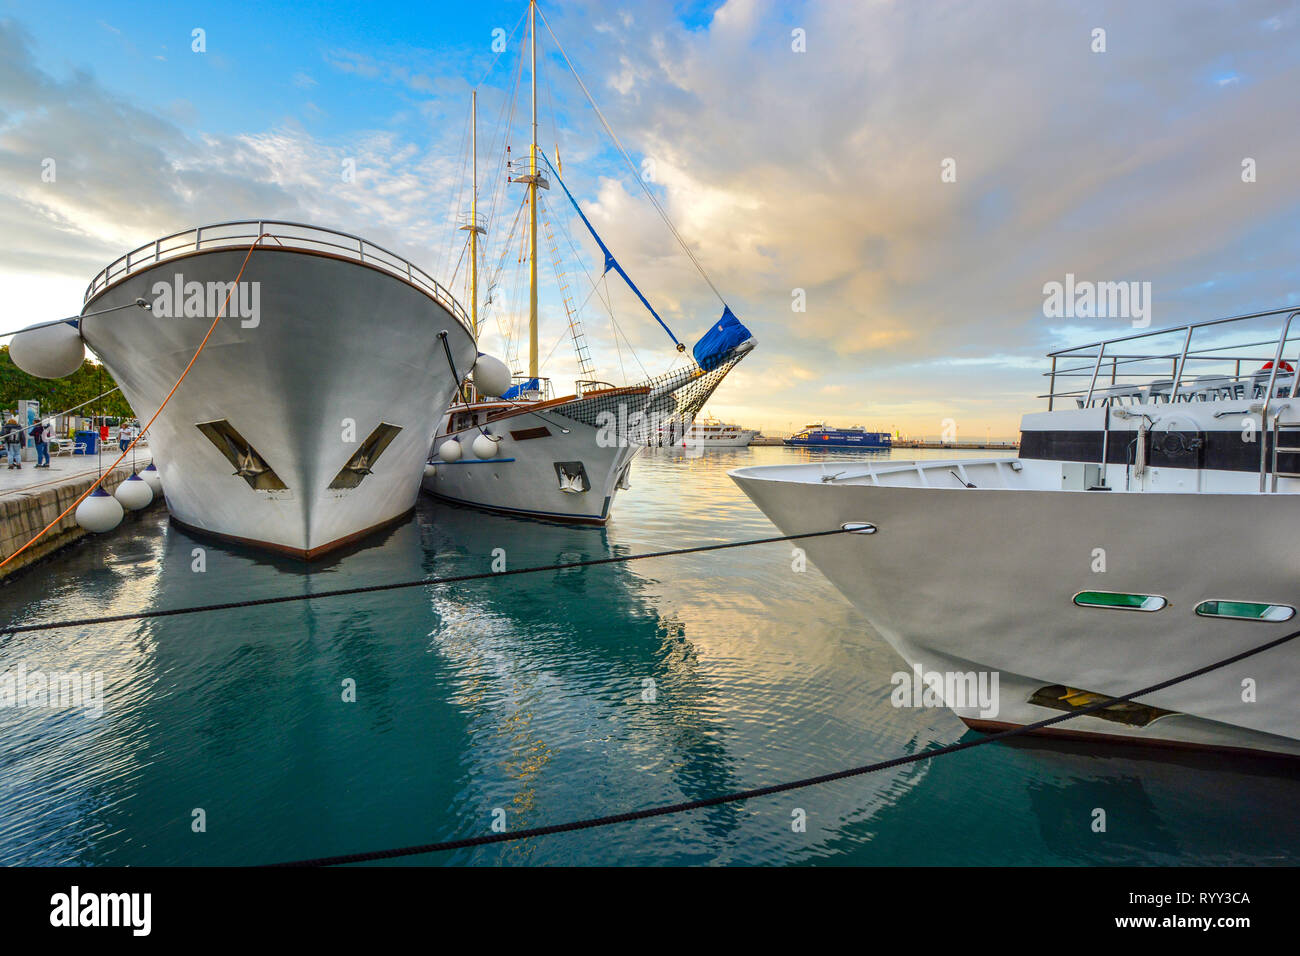 Boats, yachts, ships and ferries crowd the harbor on the Dalmatian Coast of the Adriatic Sea at the ancient port of Split, Croatia Stock Photo